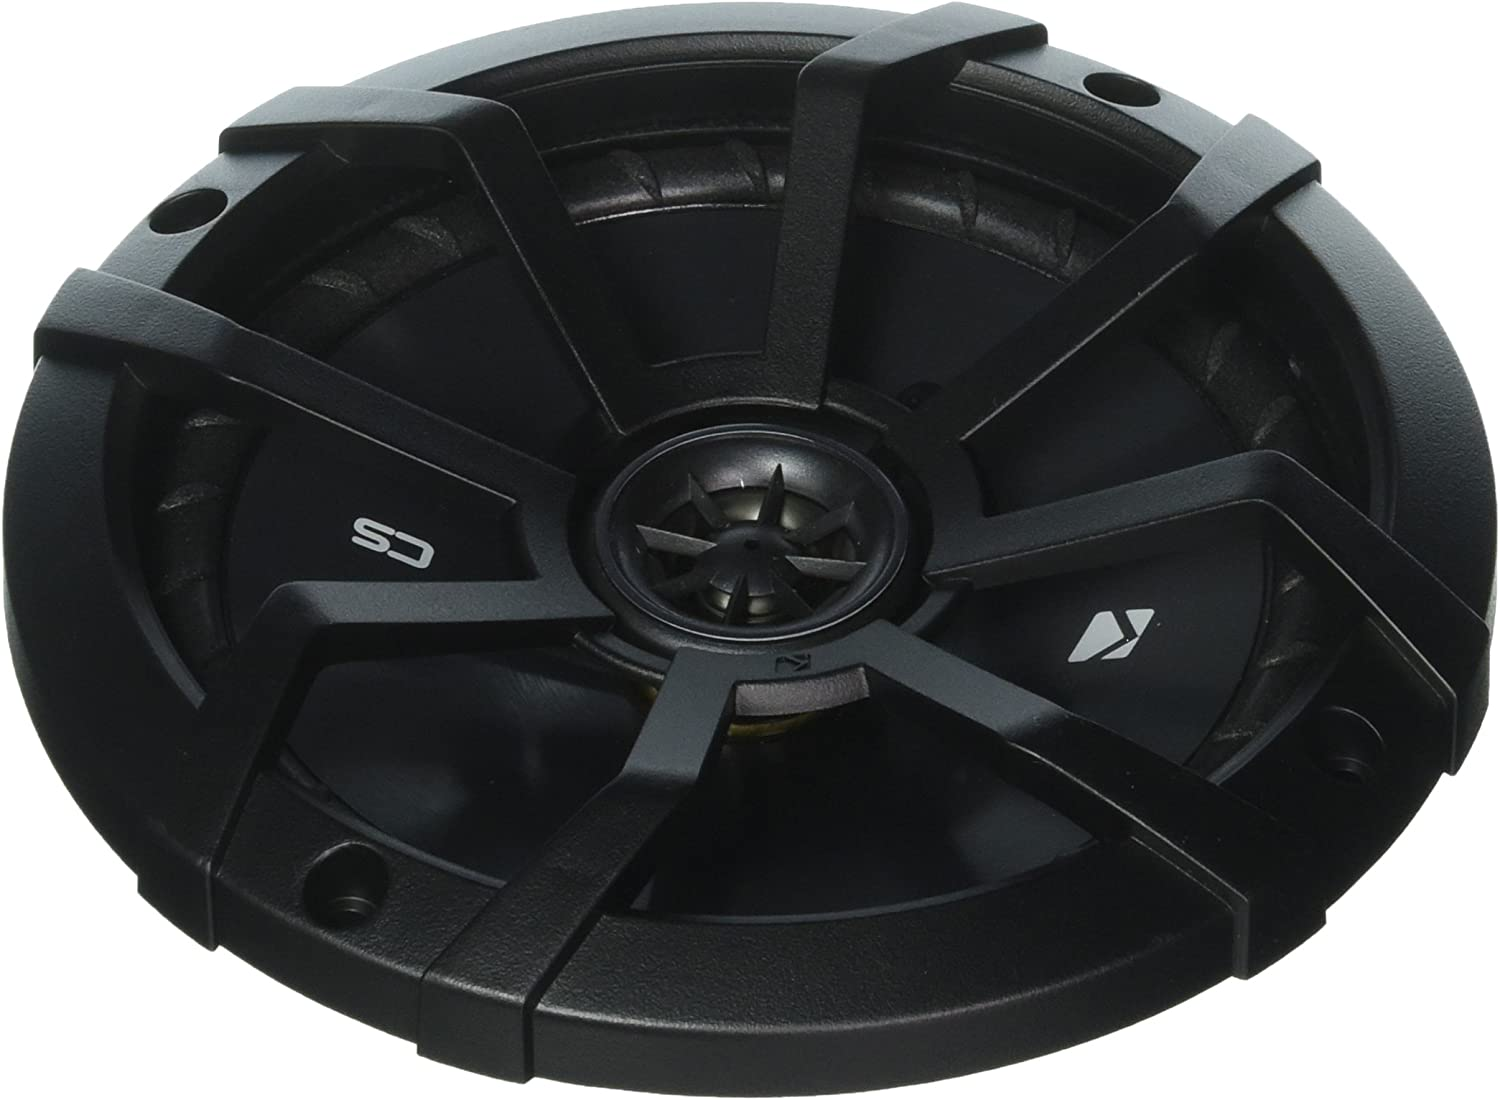 Kicker 43CSC674 CSC67 6.75-Inch Coaxial Speakers 4-Ohm OPEN BOX